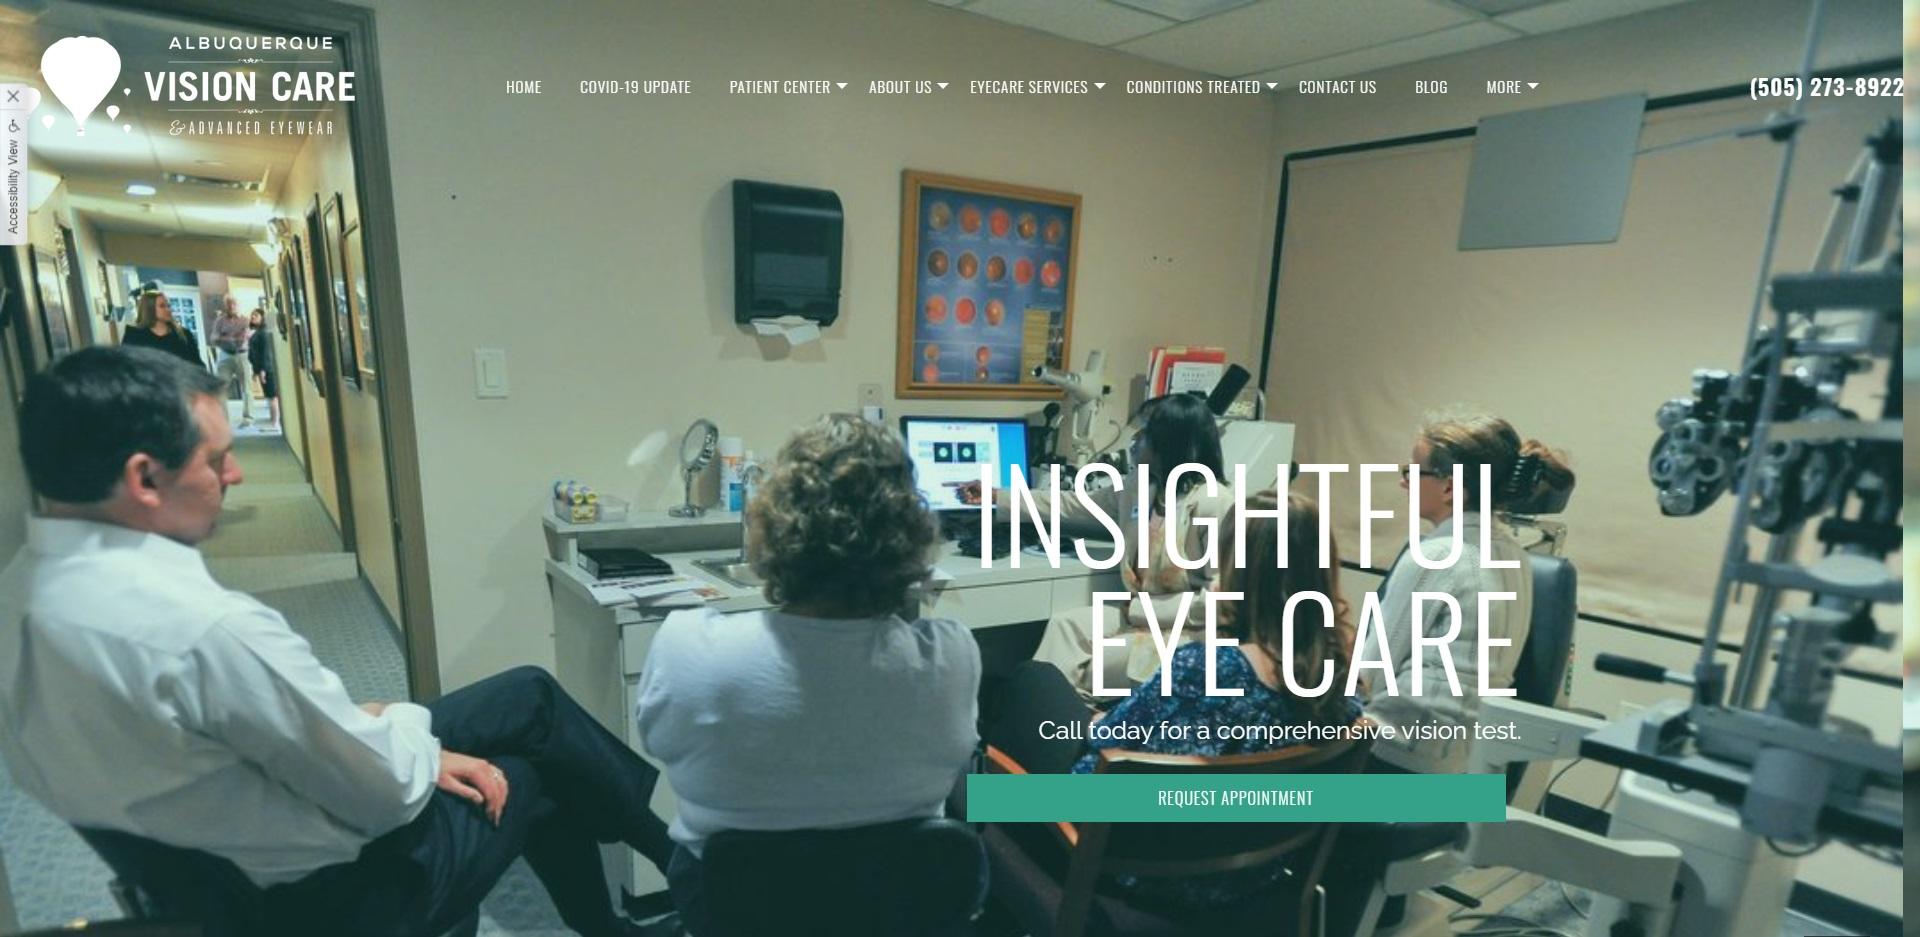 The Best Optometrists in Albuquerque, NM